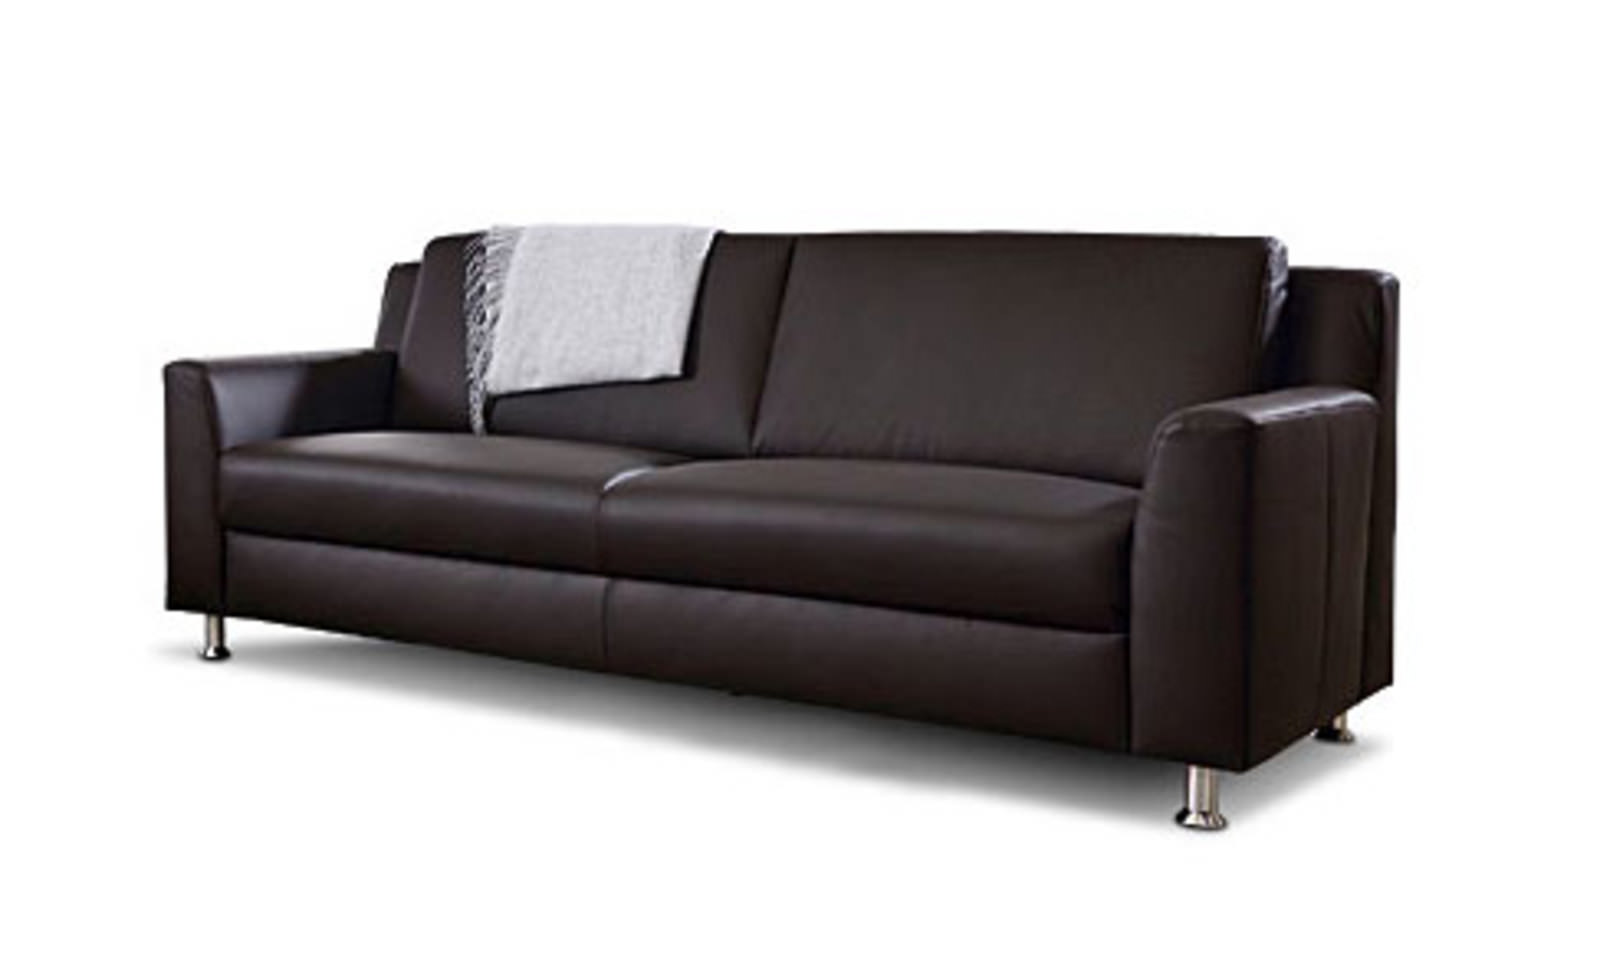 mondo sofa 2 sitzer extra gro online entdecken knuffmann ihr m belhaus. Black Bedroom Furniture Sets. Home Design Ideas